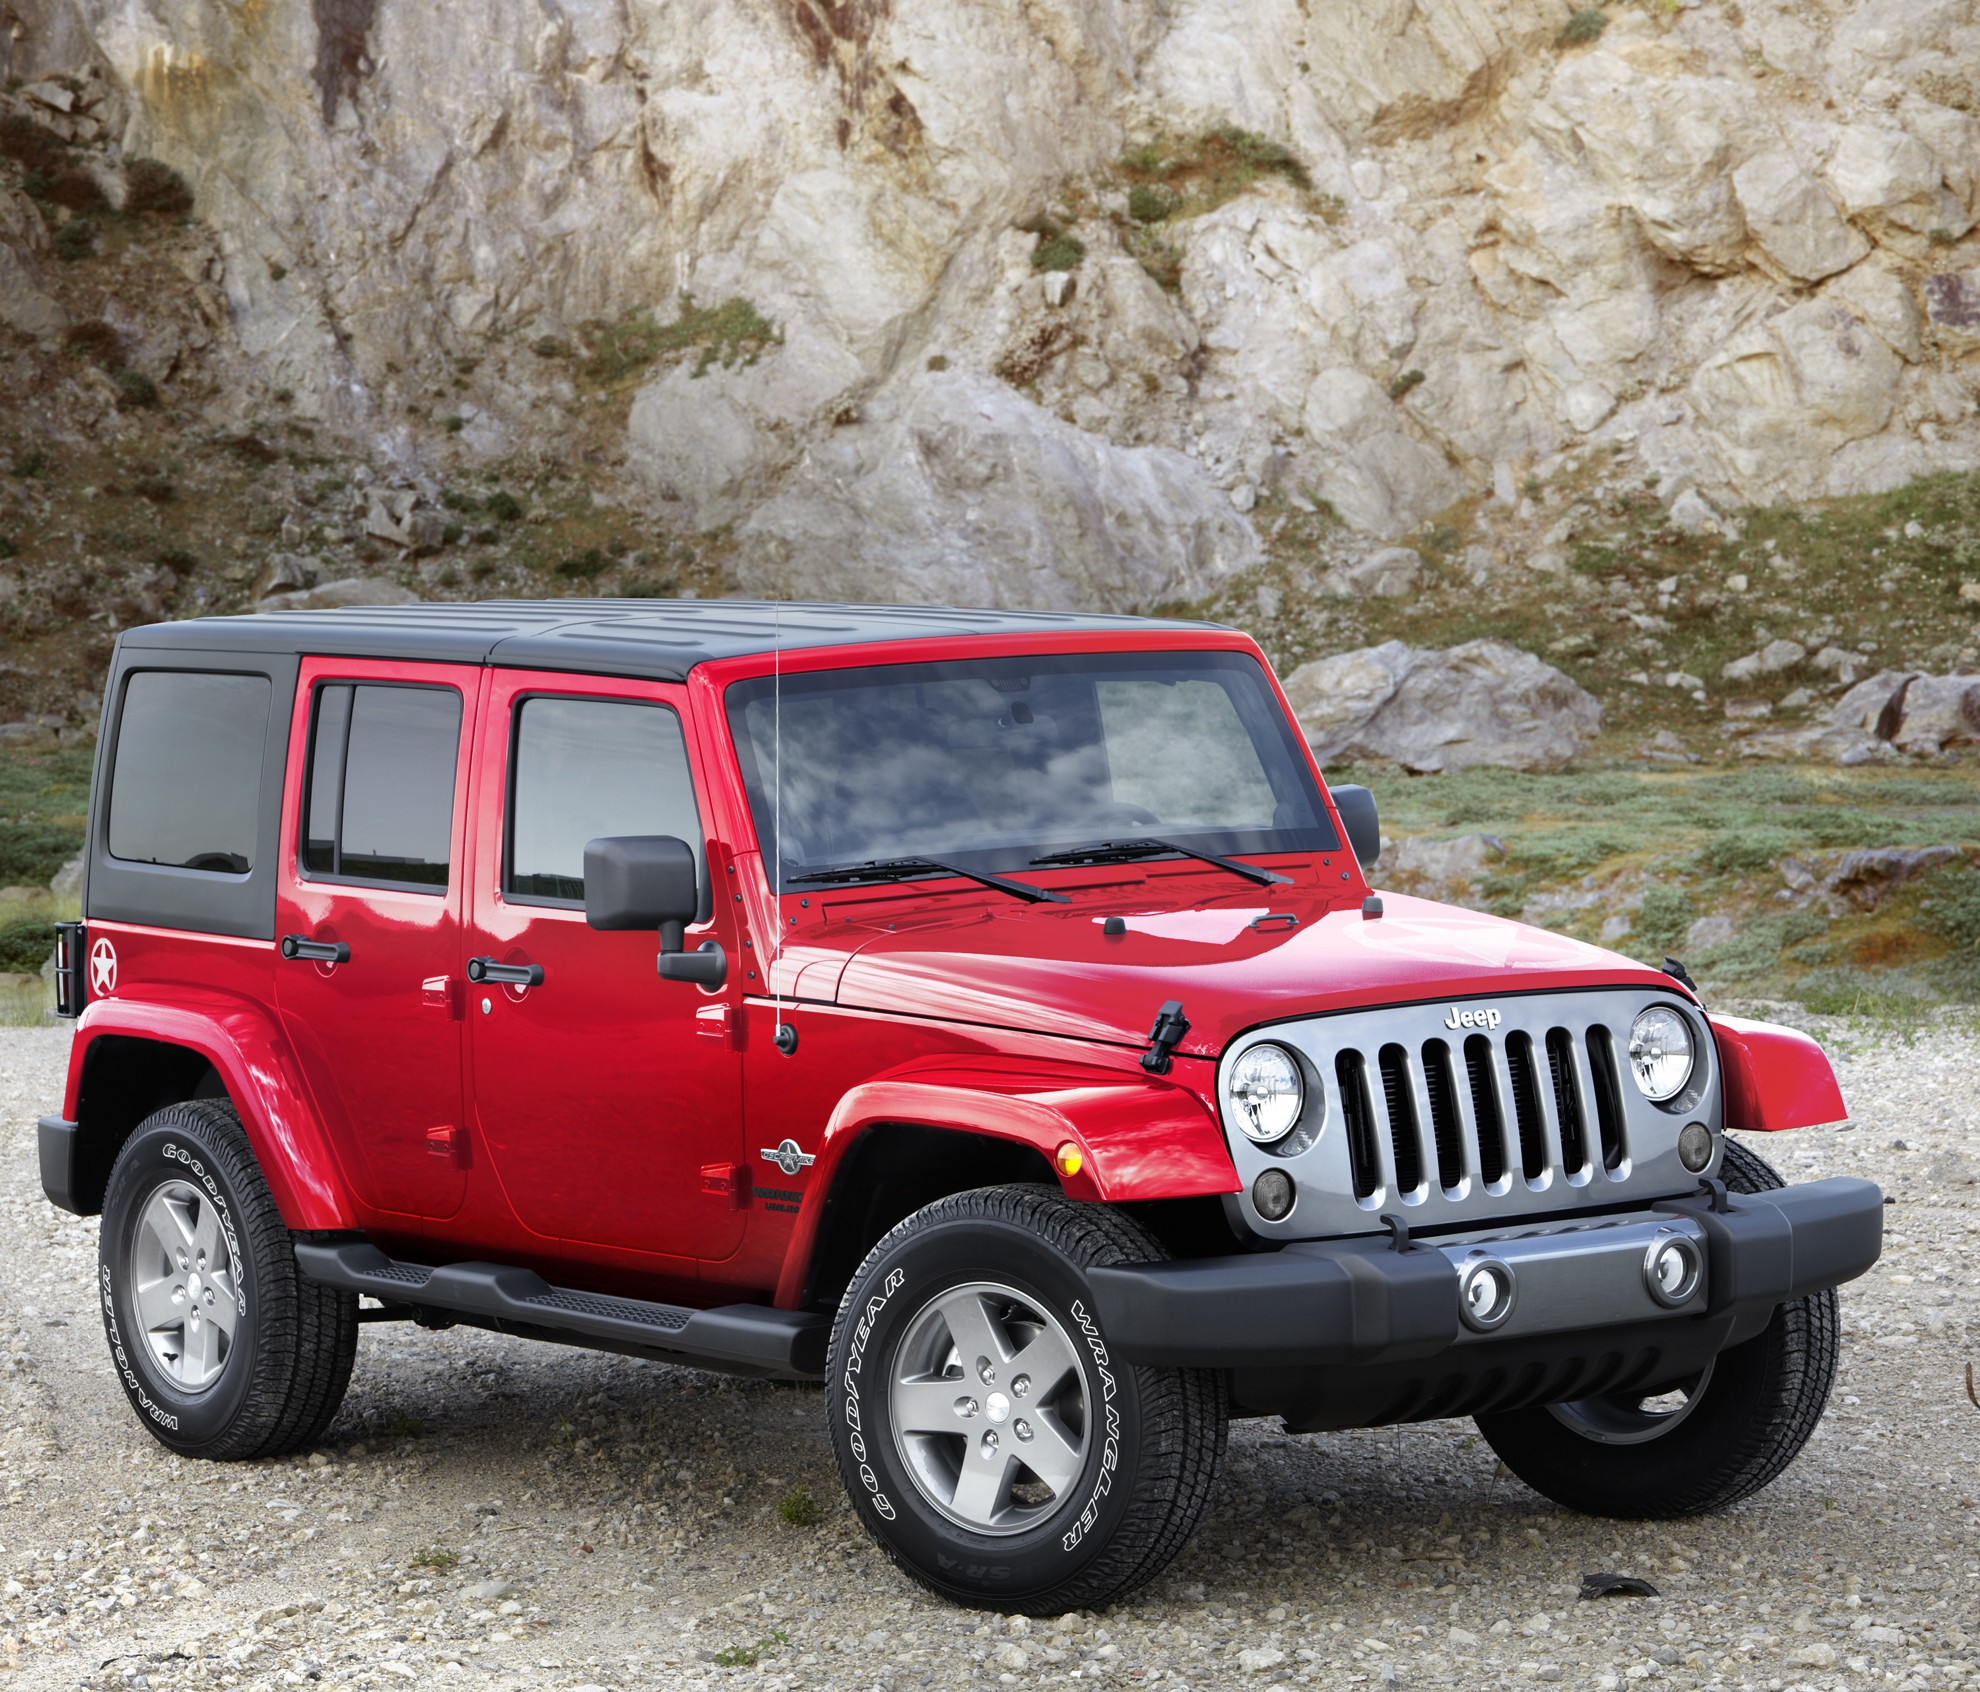 How Much Does A Jeep Wrangler 2014 Cost In South Africa